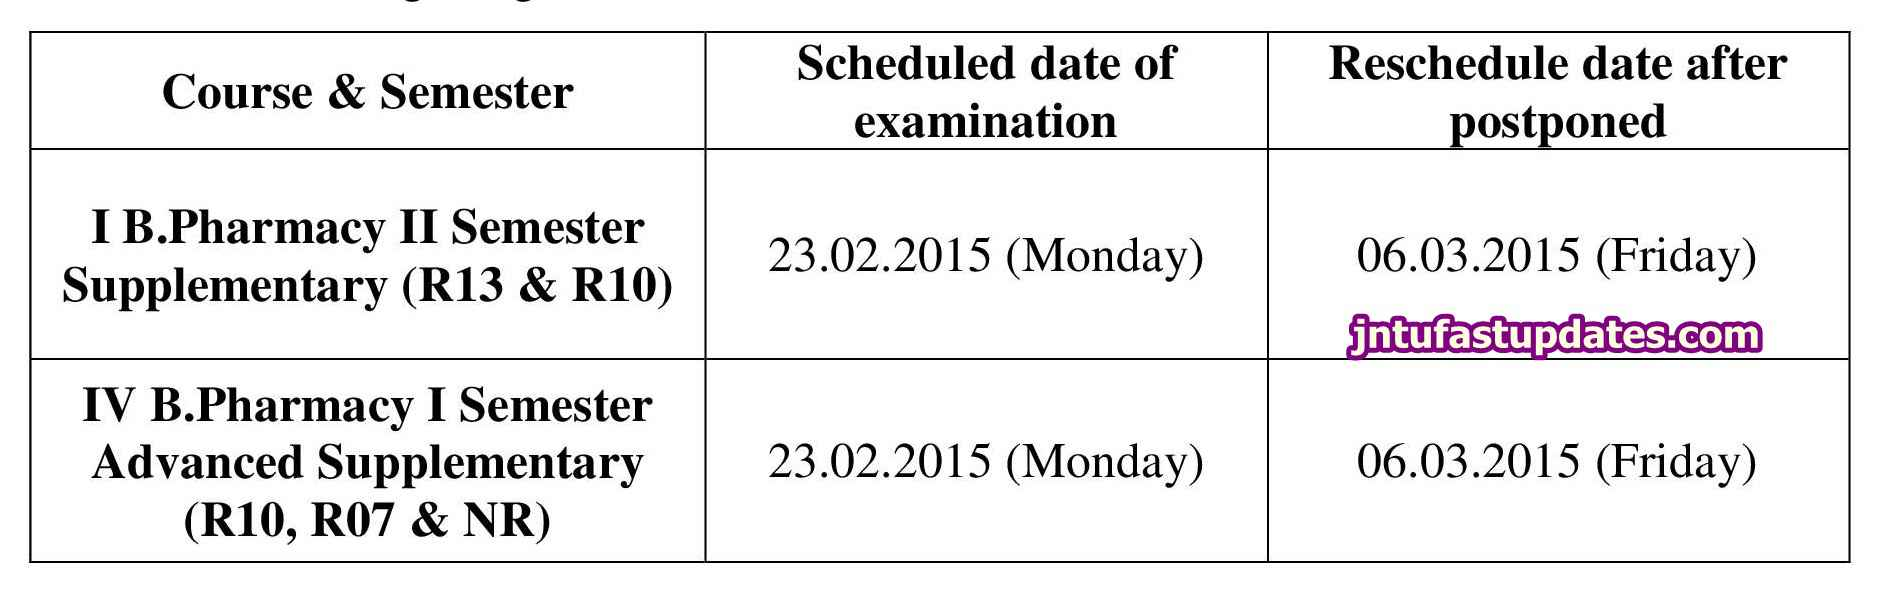 JNTUK Postpone of examination on 23-02-2015 in view of GPAT 2015